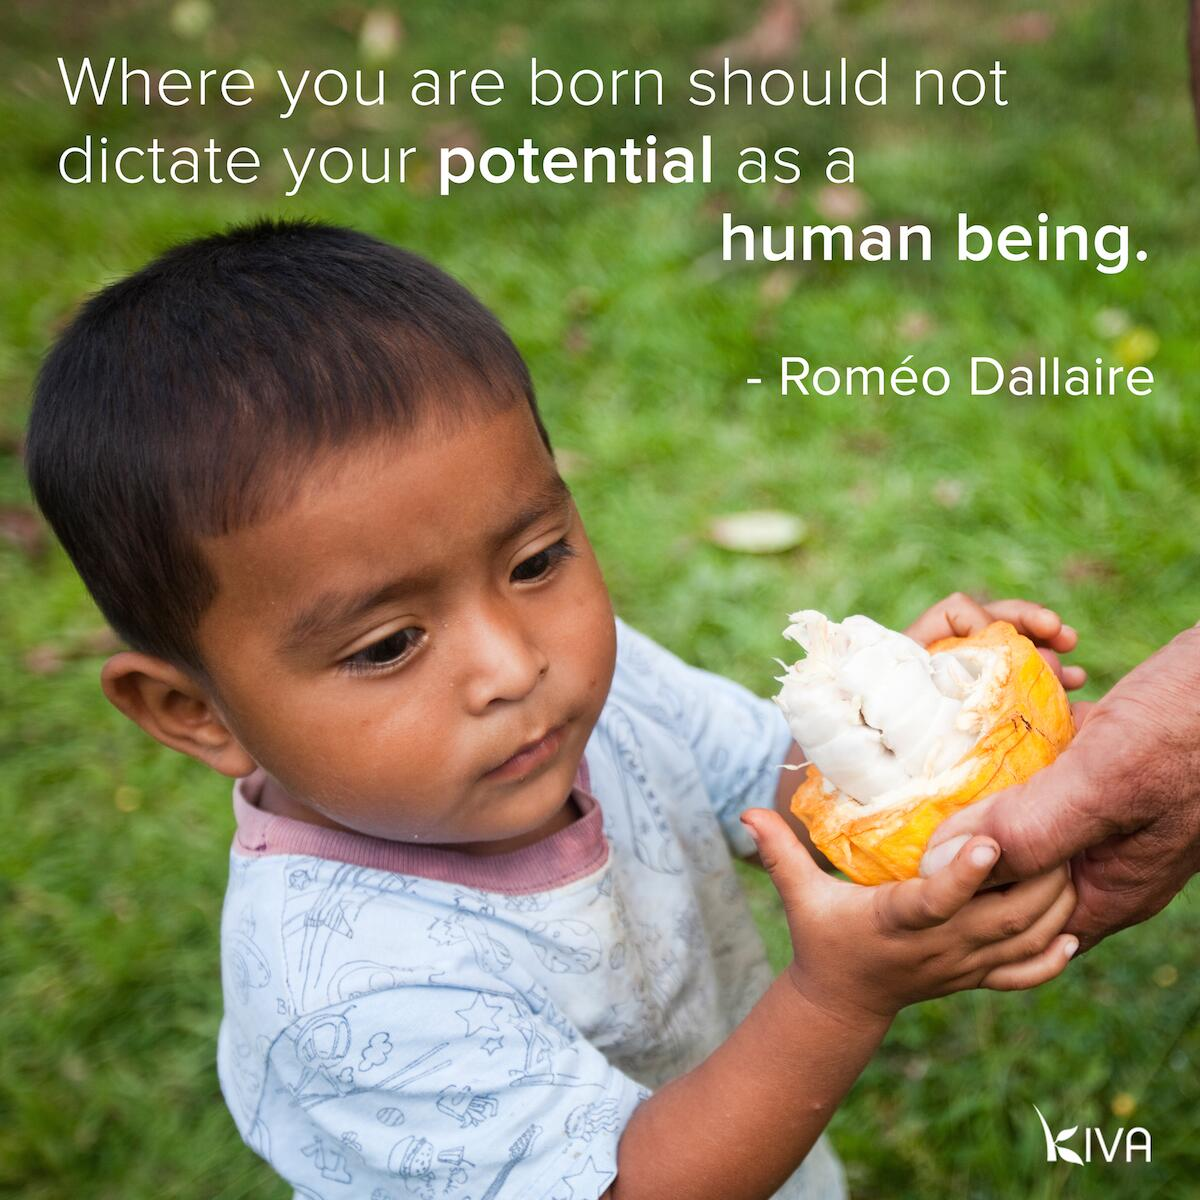 """""""Where you are born should not dictate your potential as a human being"""" - Roméo Dallaire http://t.co/vEGqXT7ikM"""